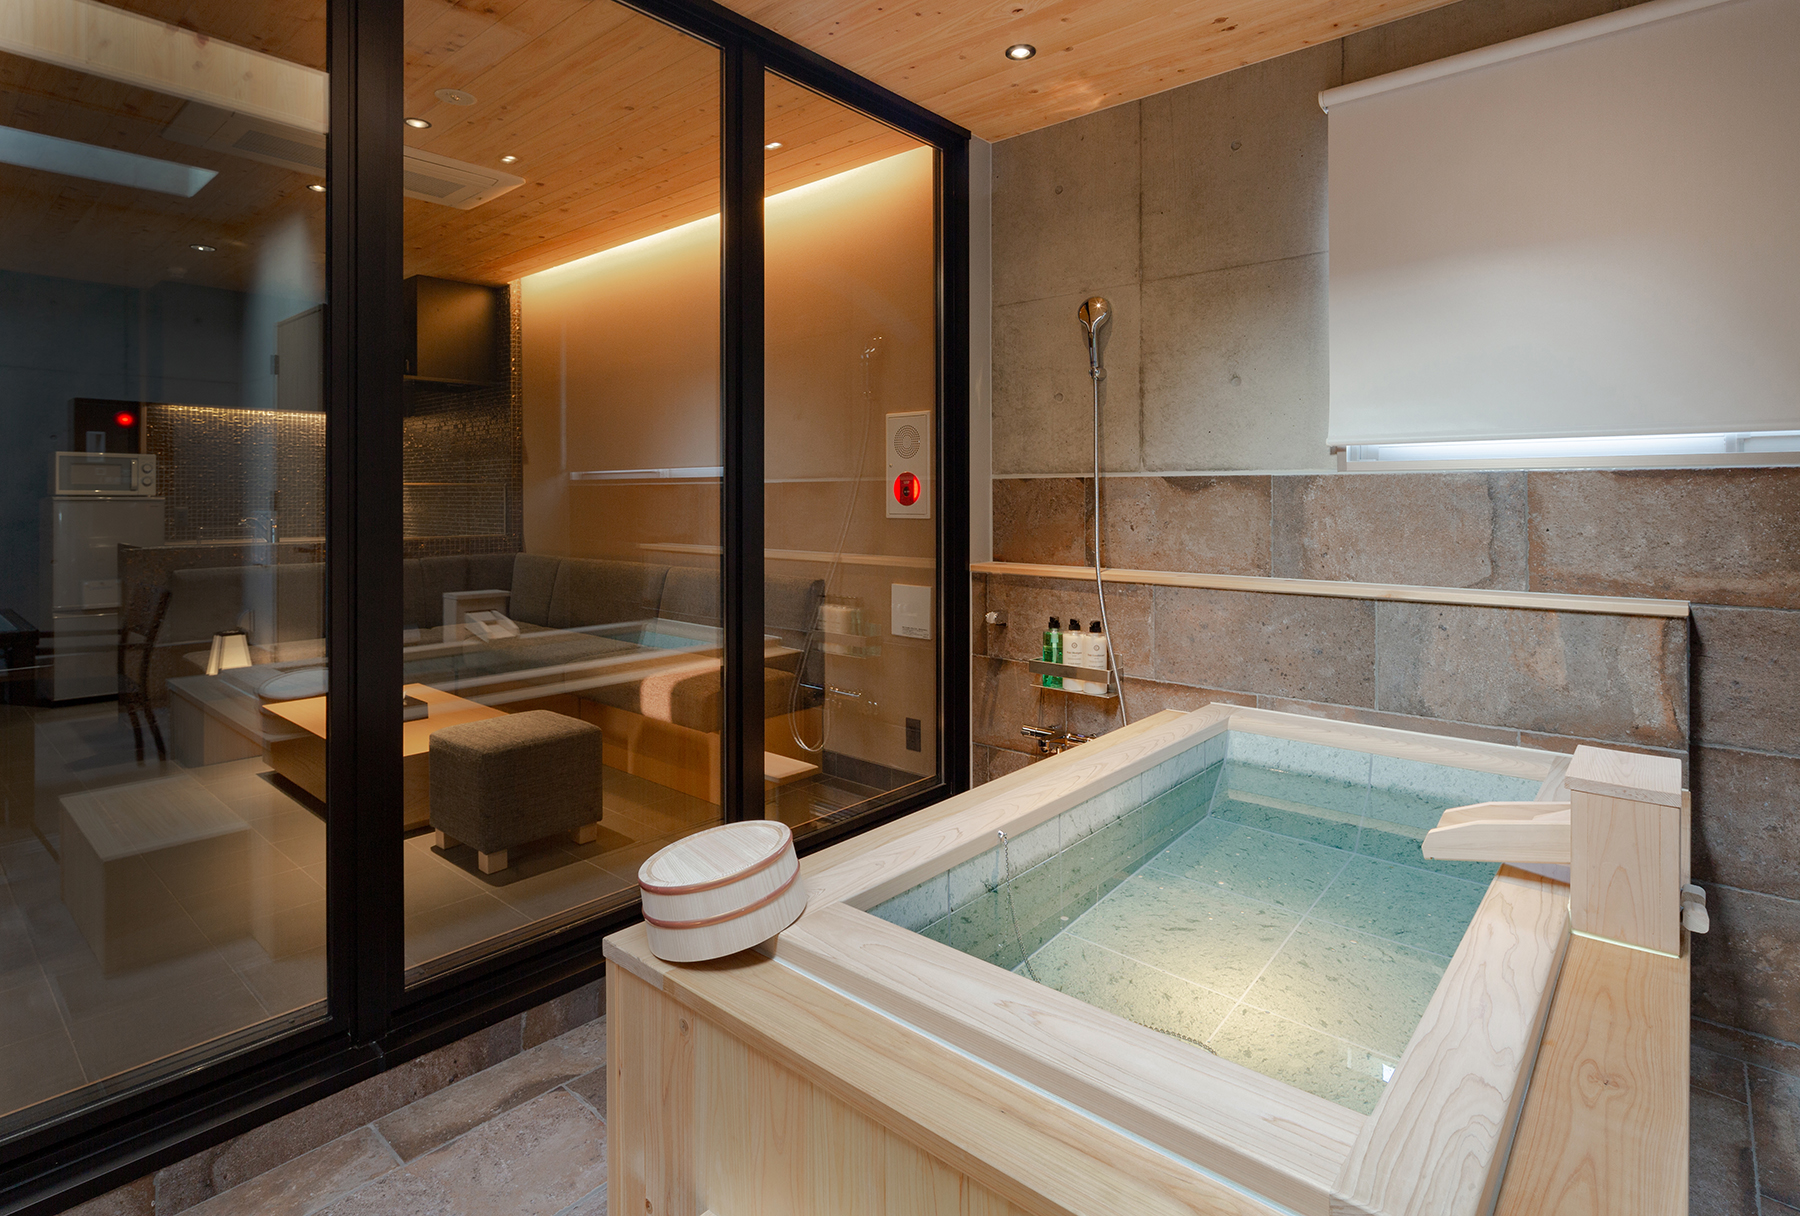 DX Suite Room: Luxury private bath